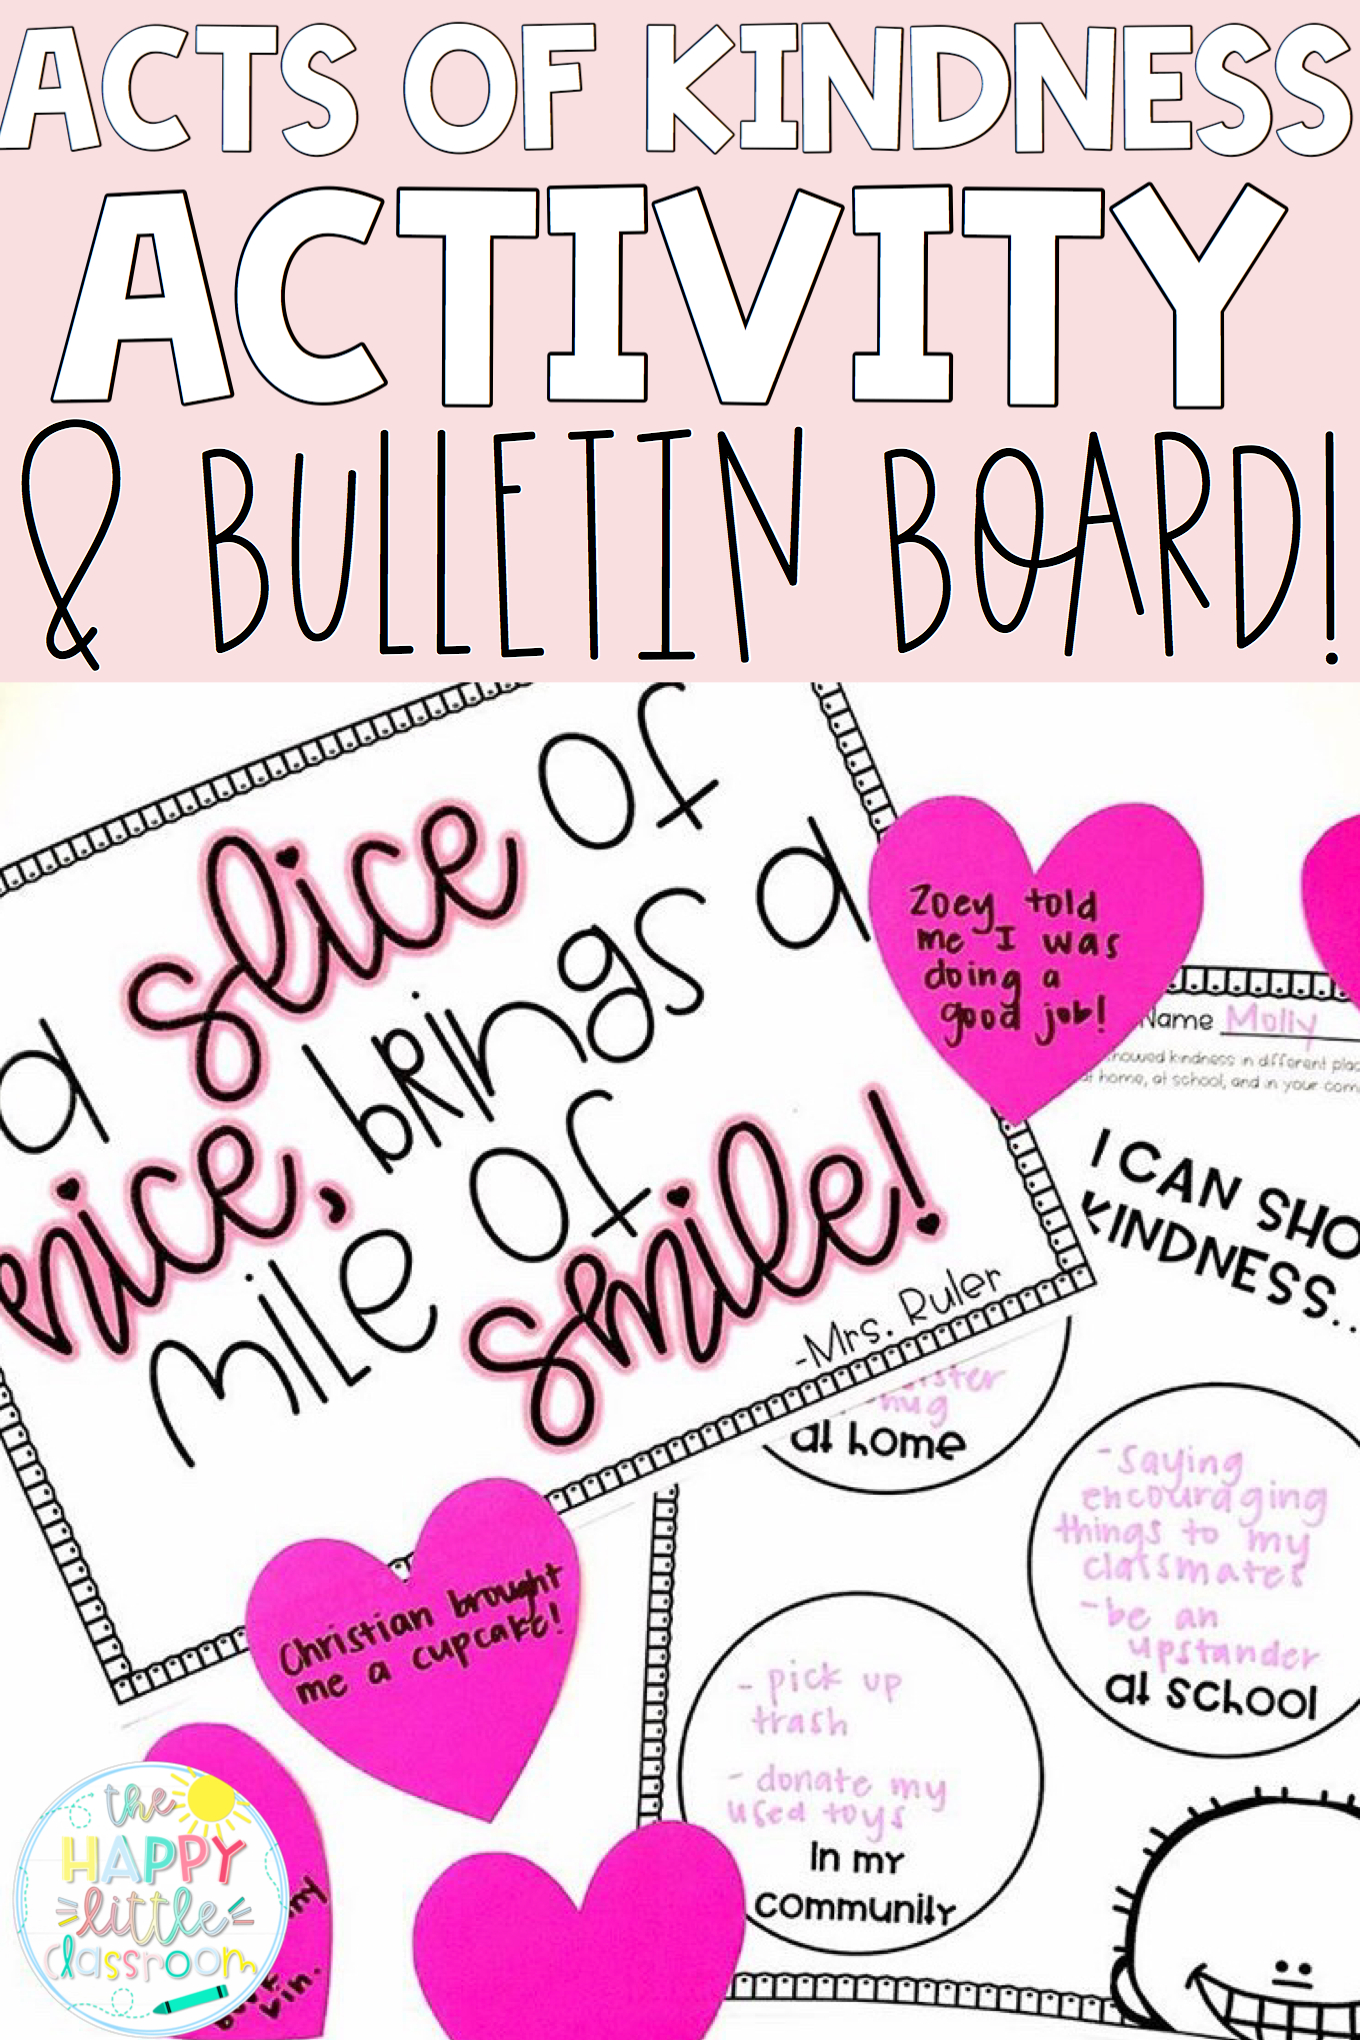 Acts Of Kindness Bulletin Board And Activities | Kindness